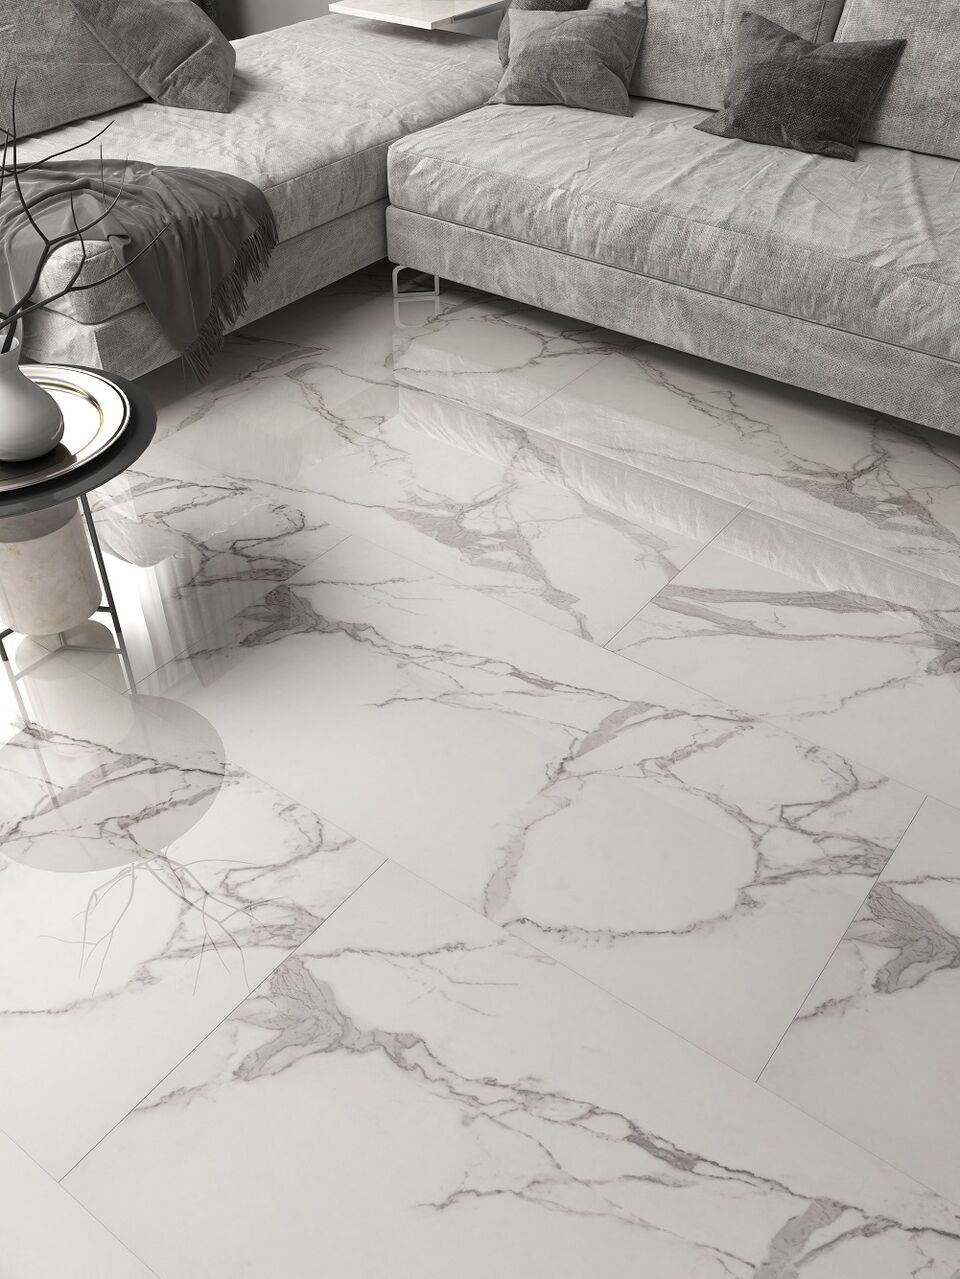 Lets talk turkey regarding ceramic tile trends at coverings today turkey is an accepted world leader in the global ceramics industry today due to its abundance of natural resources high quality ceramic products dailygadgetfo Choice Image